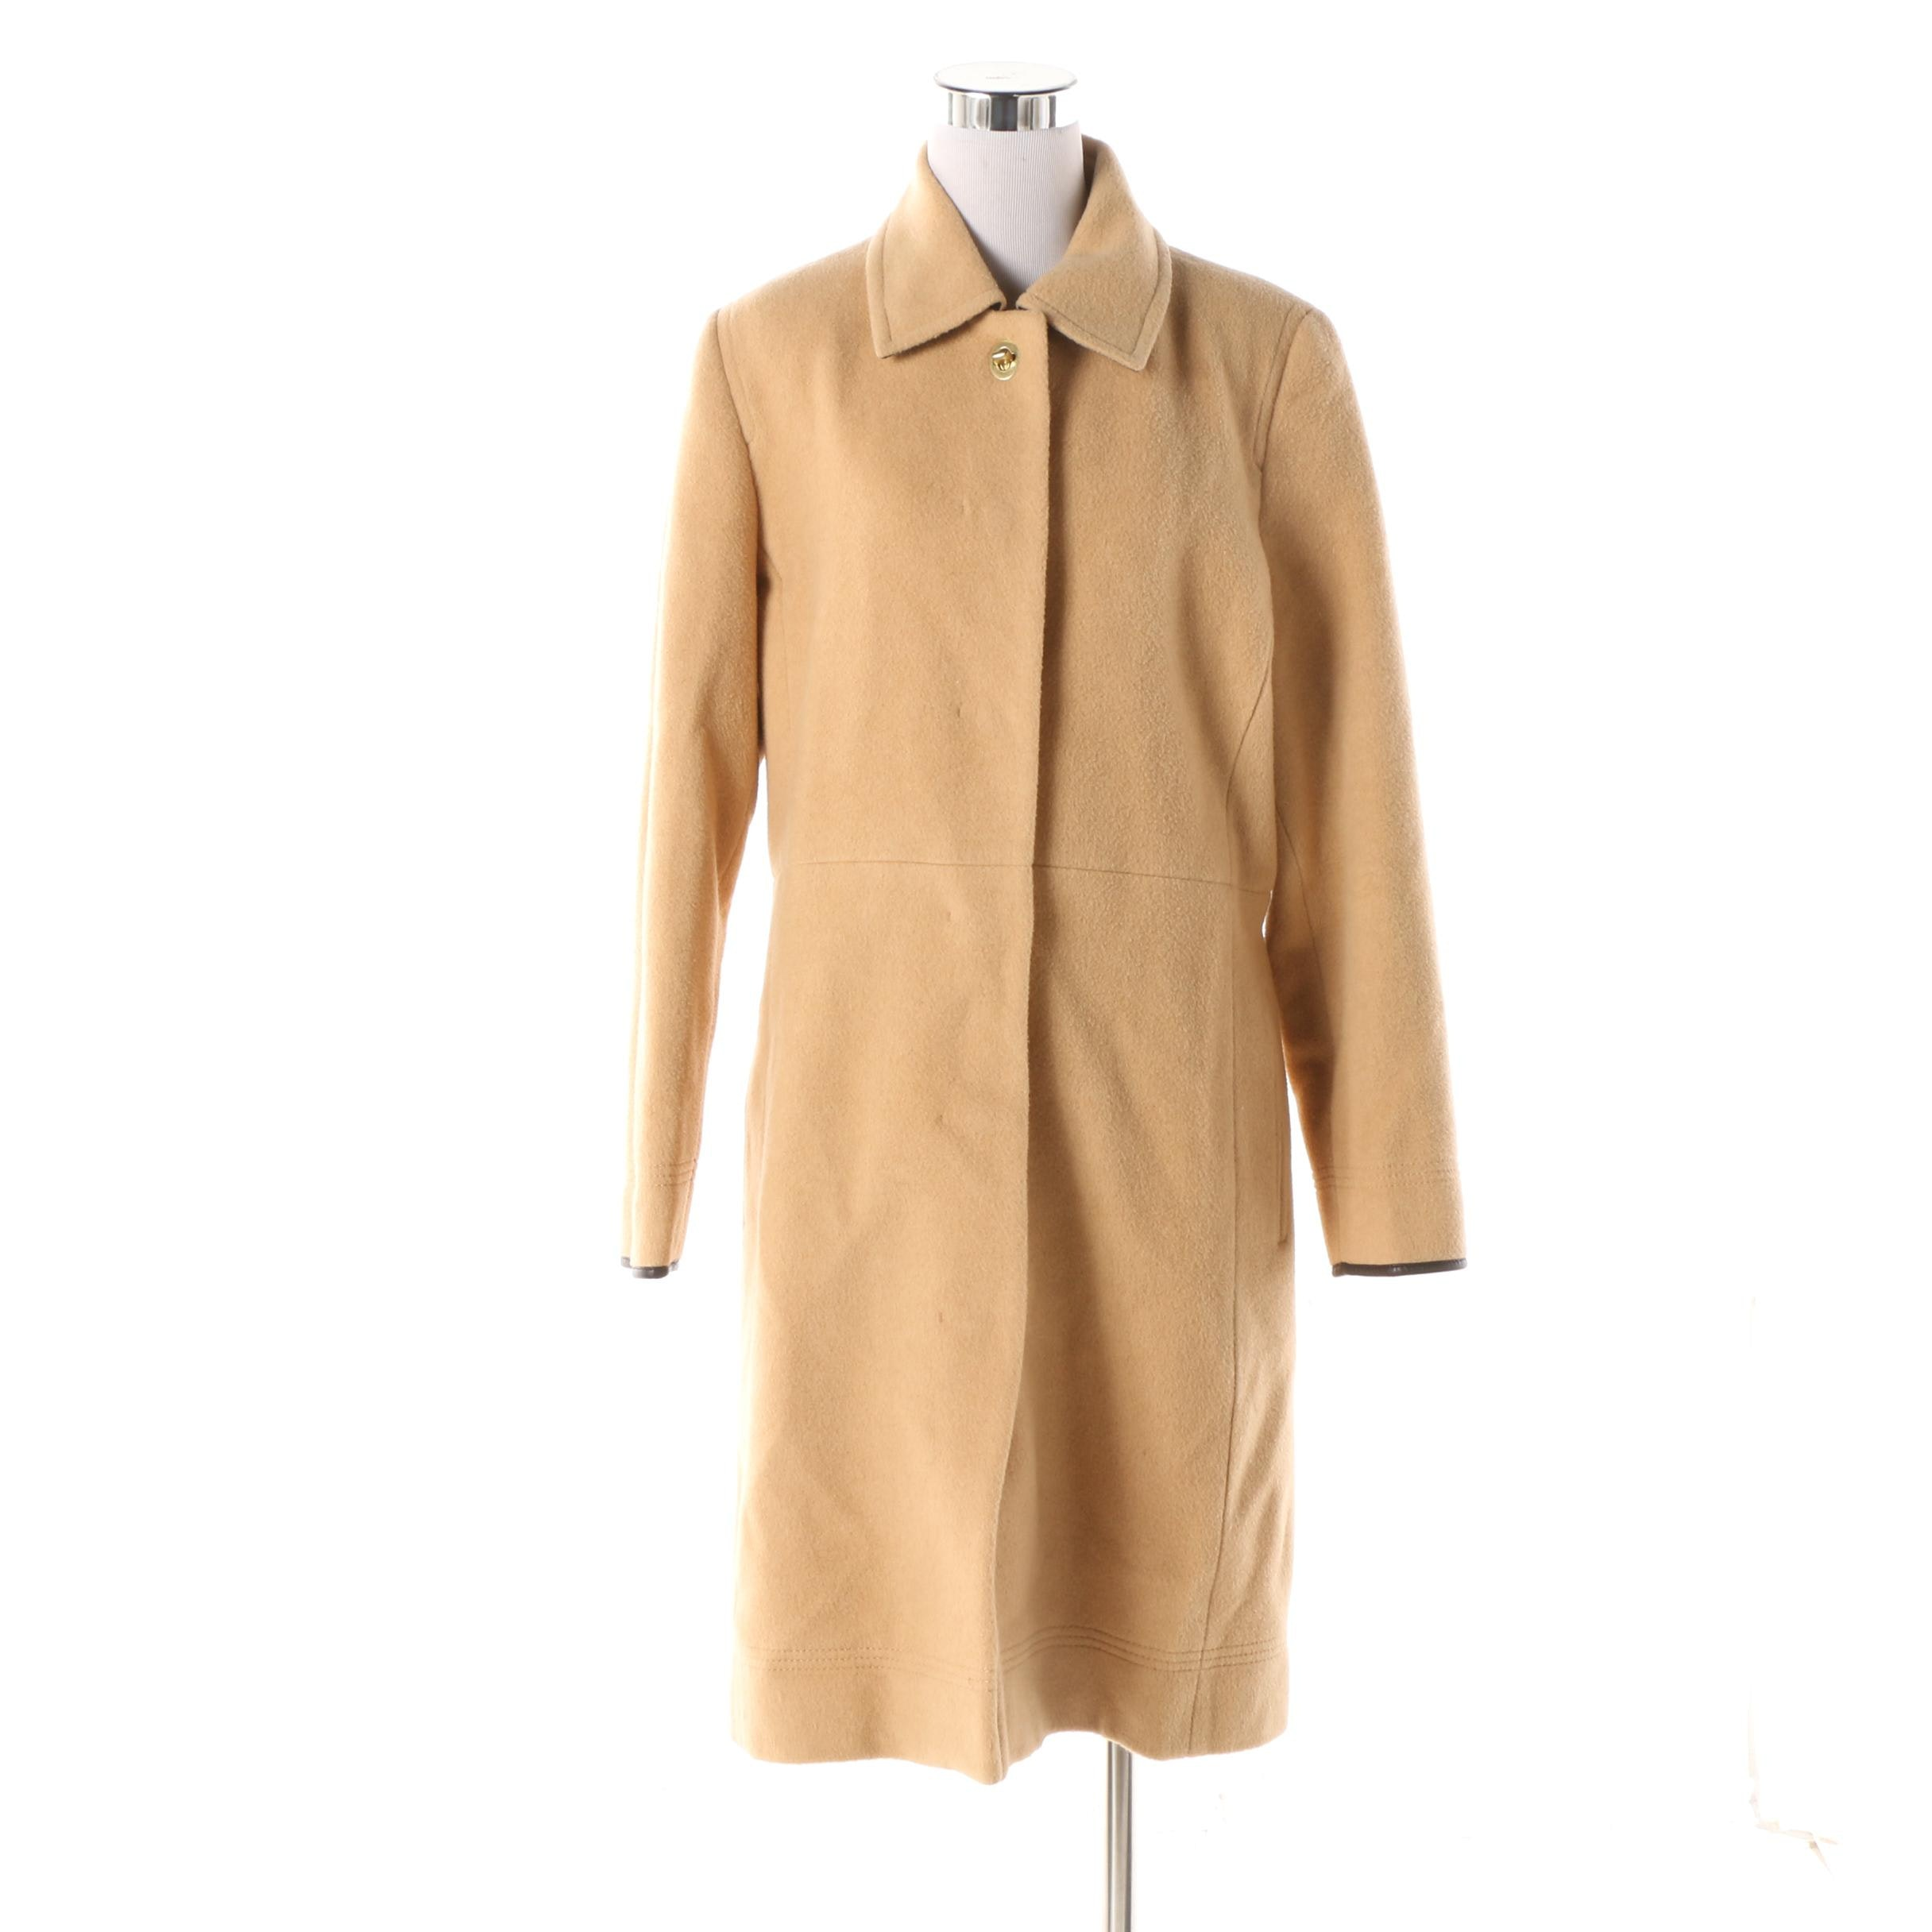 Women's Coach Camel Hair Overcoat